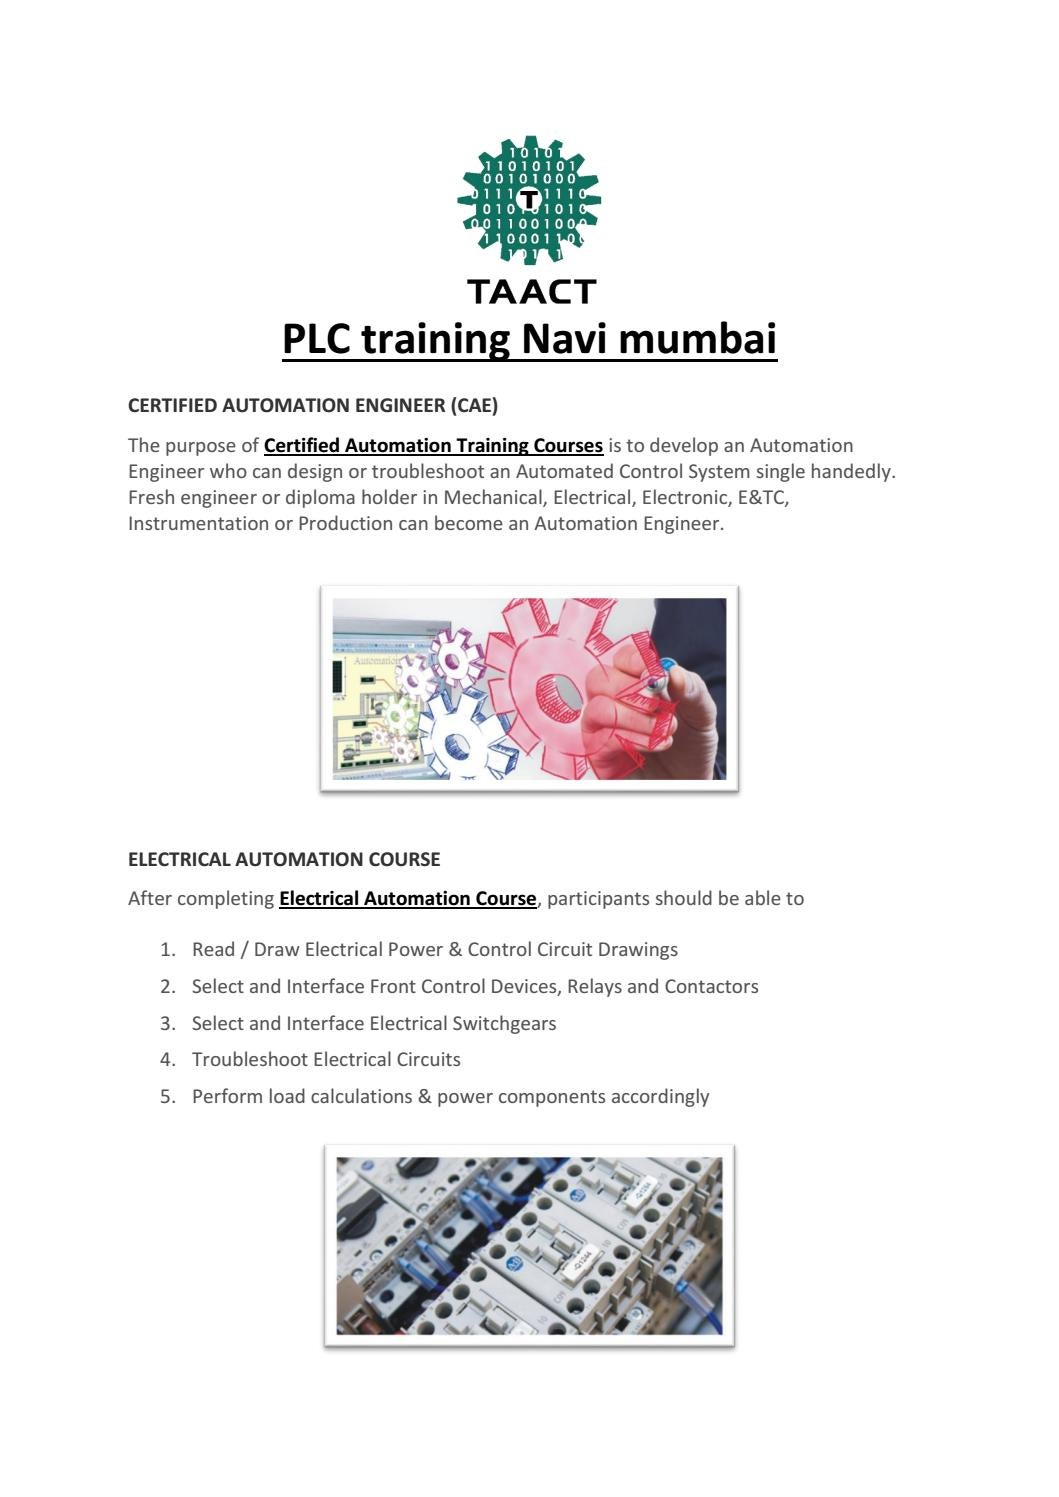 Plc Training Navi Mumbai By Taact In Automation Issuu Troubleshooting The Basic Electrical Control Circuits System